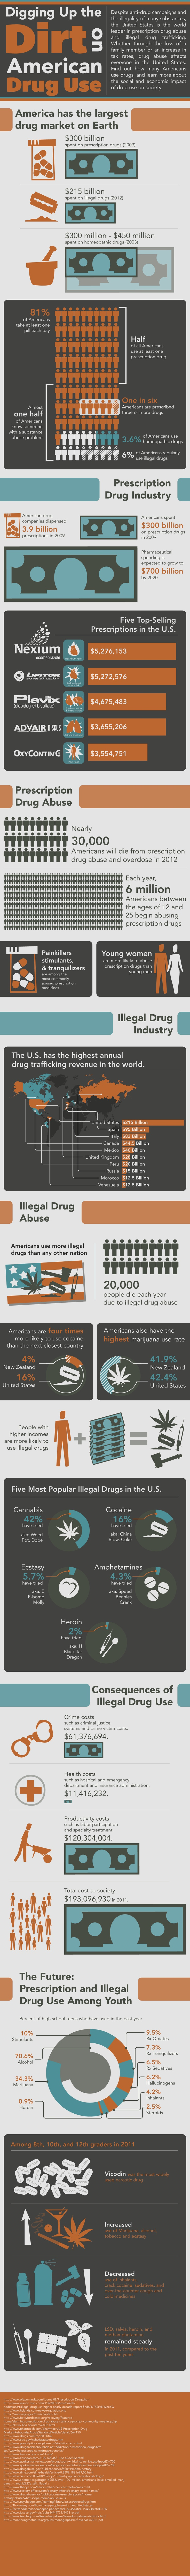 an analysis of the negative experiences of marijuana and the harmful drug use in life The scientists focus on marijuana's harmful effects on teens, an age group in which the brain rapidly develops, which is one factor that could help explain increased risks from marijuana use in this population.